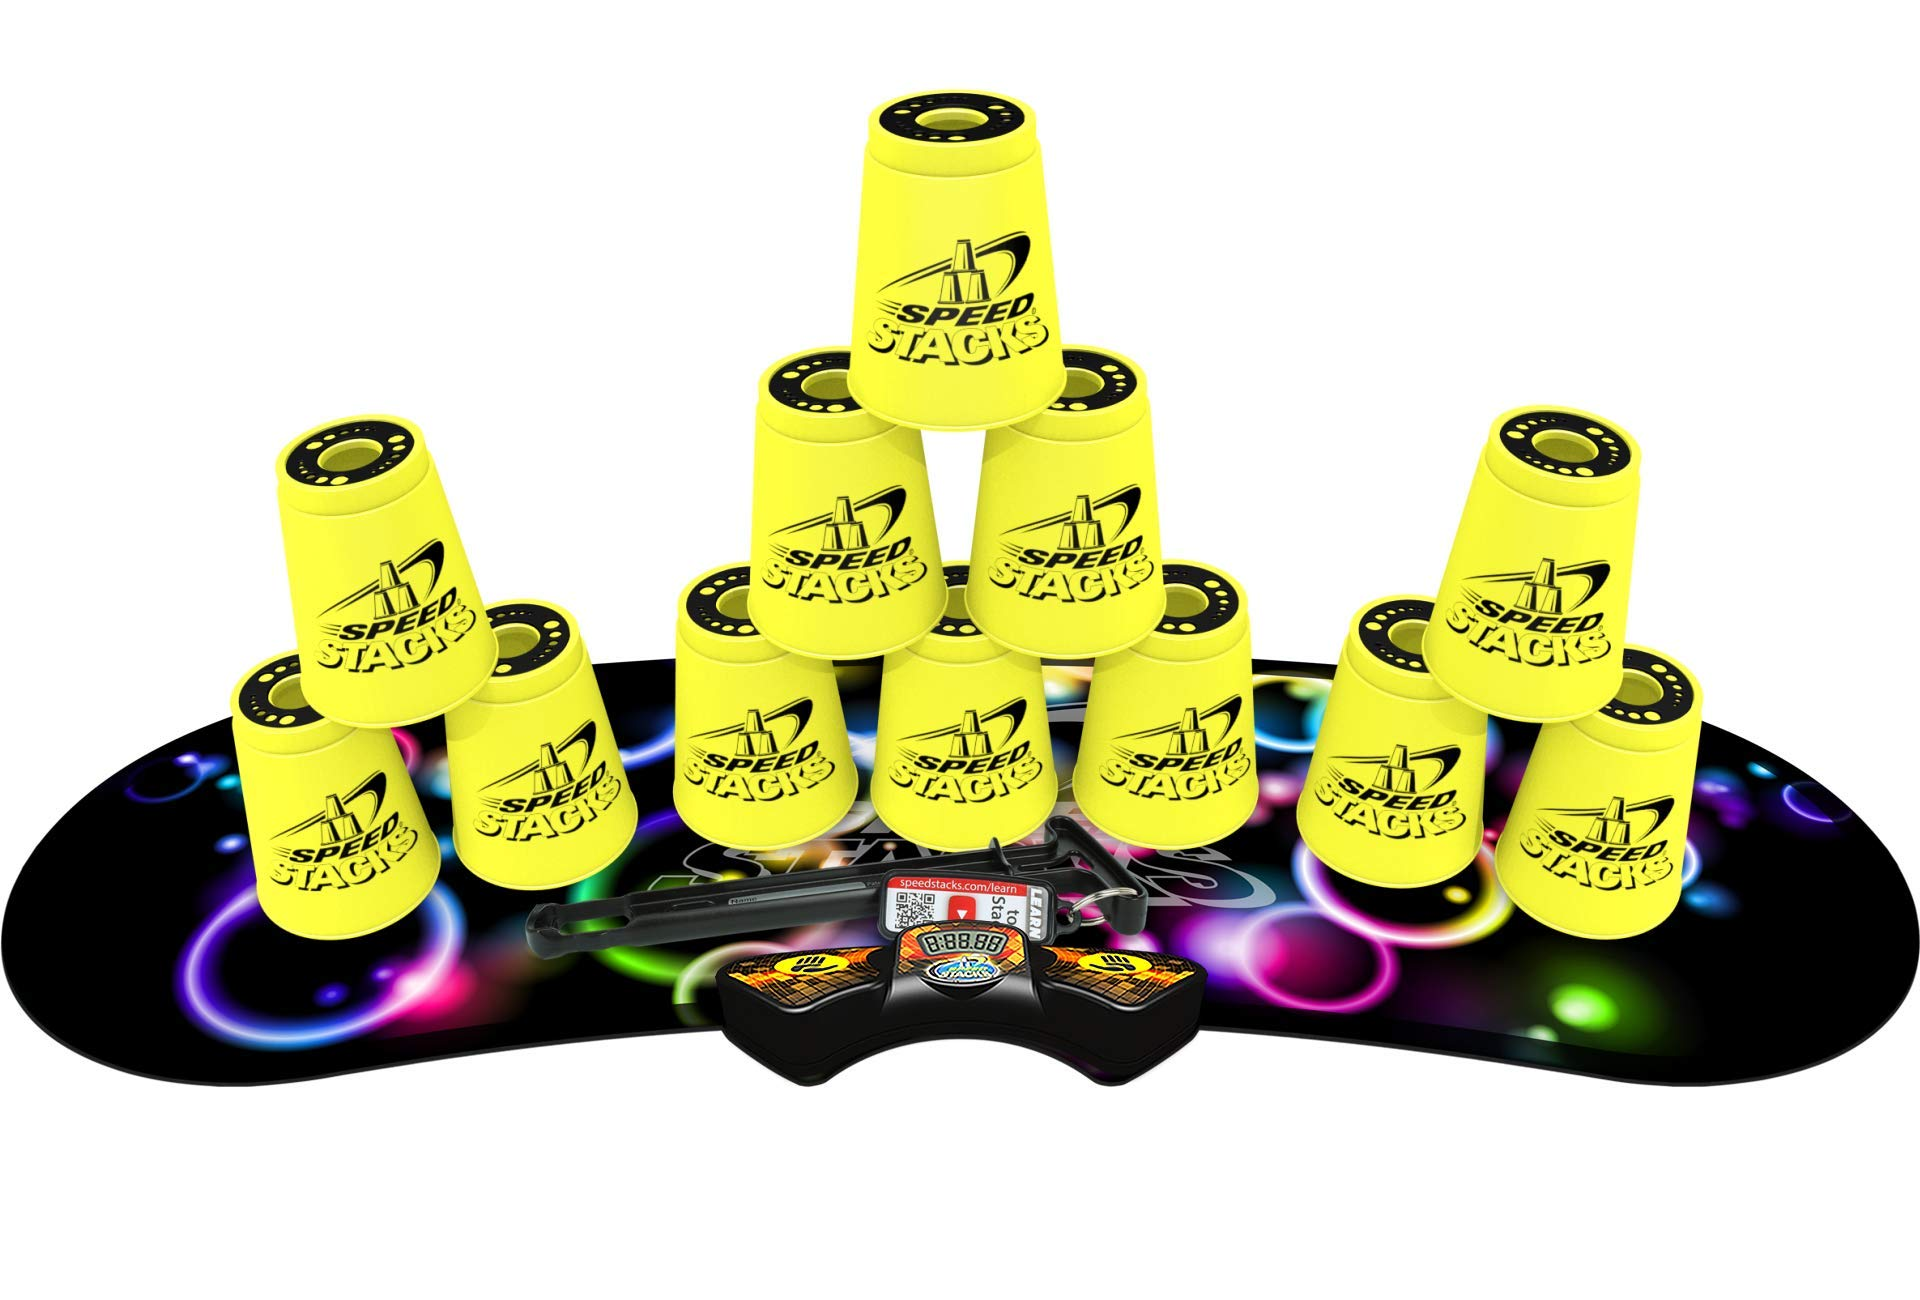 SPEED STACKS Competitor - Neon Yellow w/ Neon Bubbles Mat